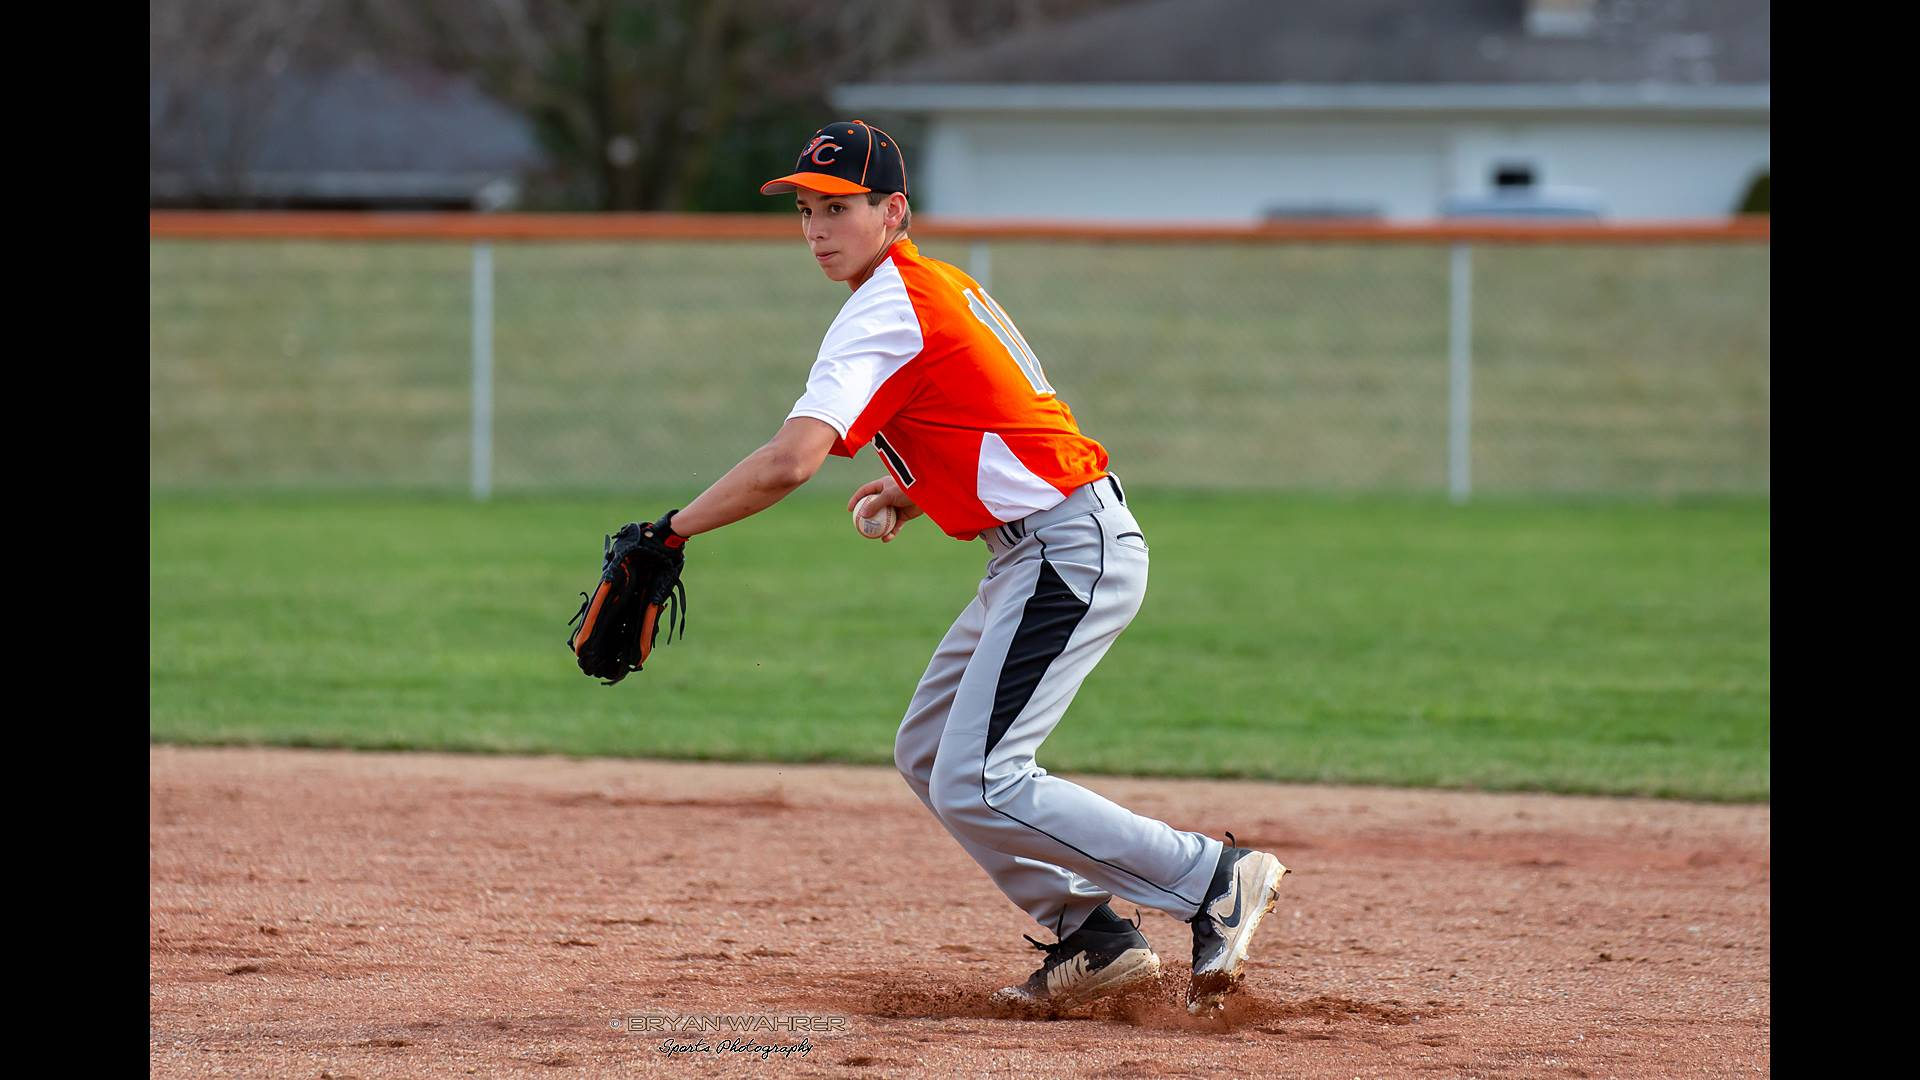 baseball infielder going for the ball